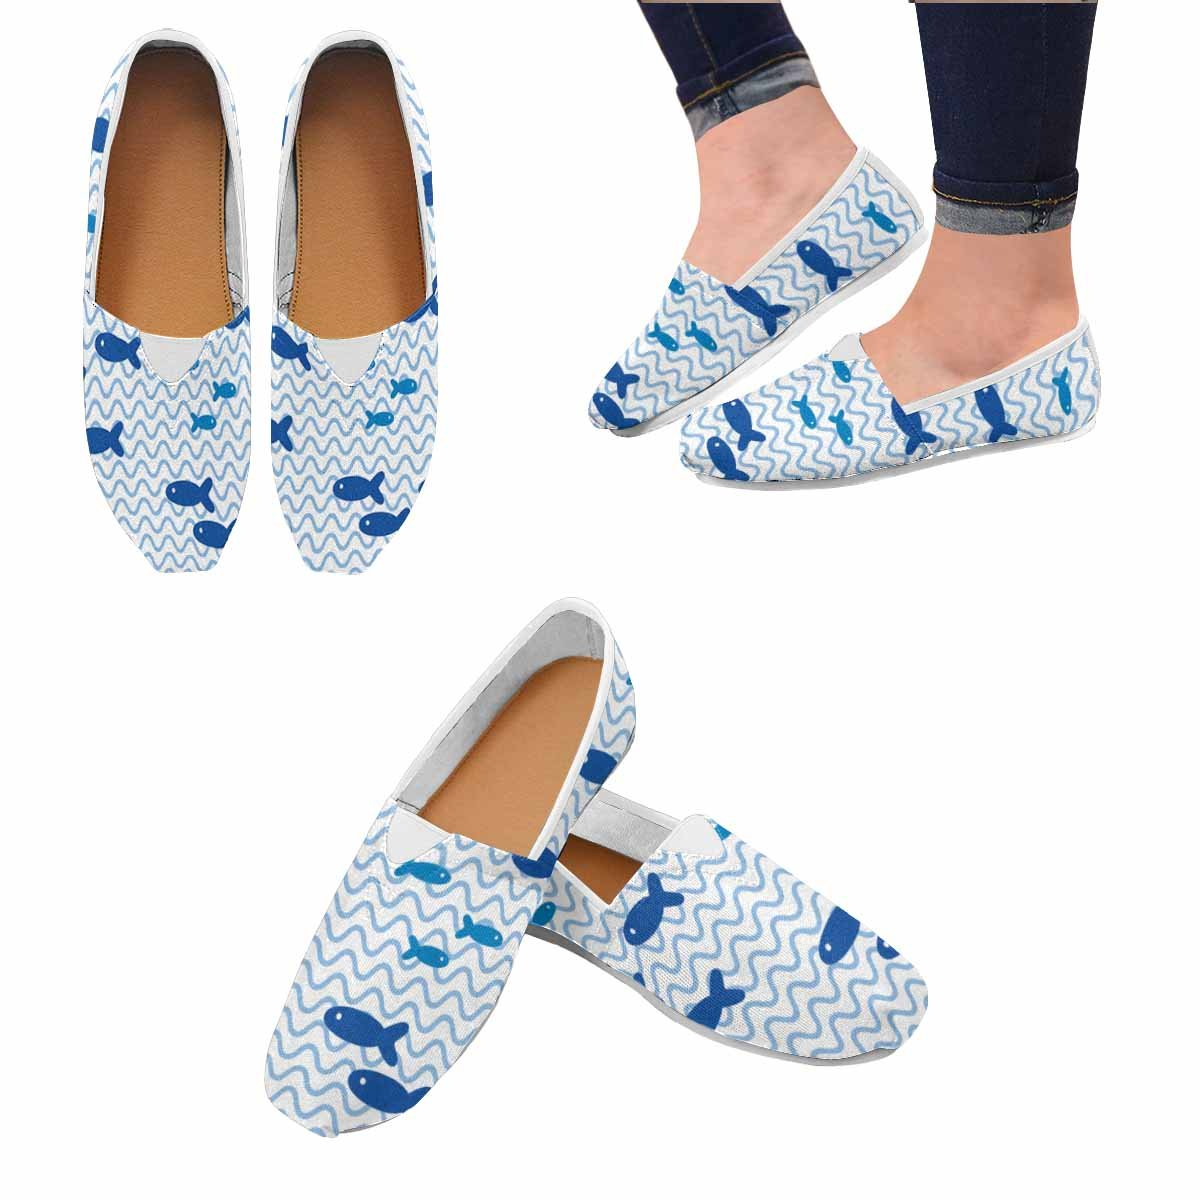 InterestPrint Womens Casual Comfort Flat Slip on Driving Walking Flats Shoes Fashion Loafers Blue Fish